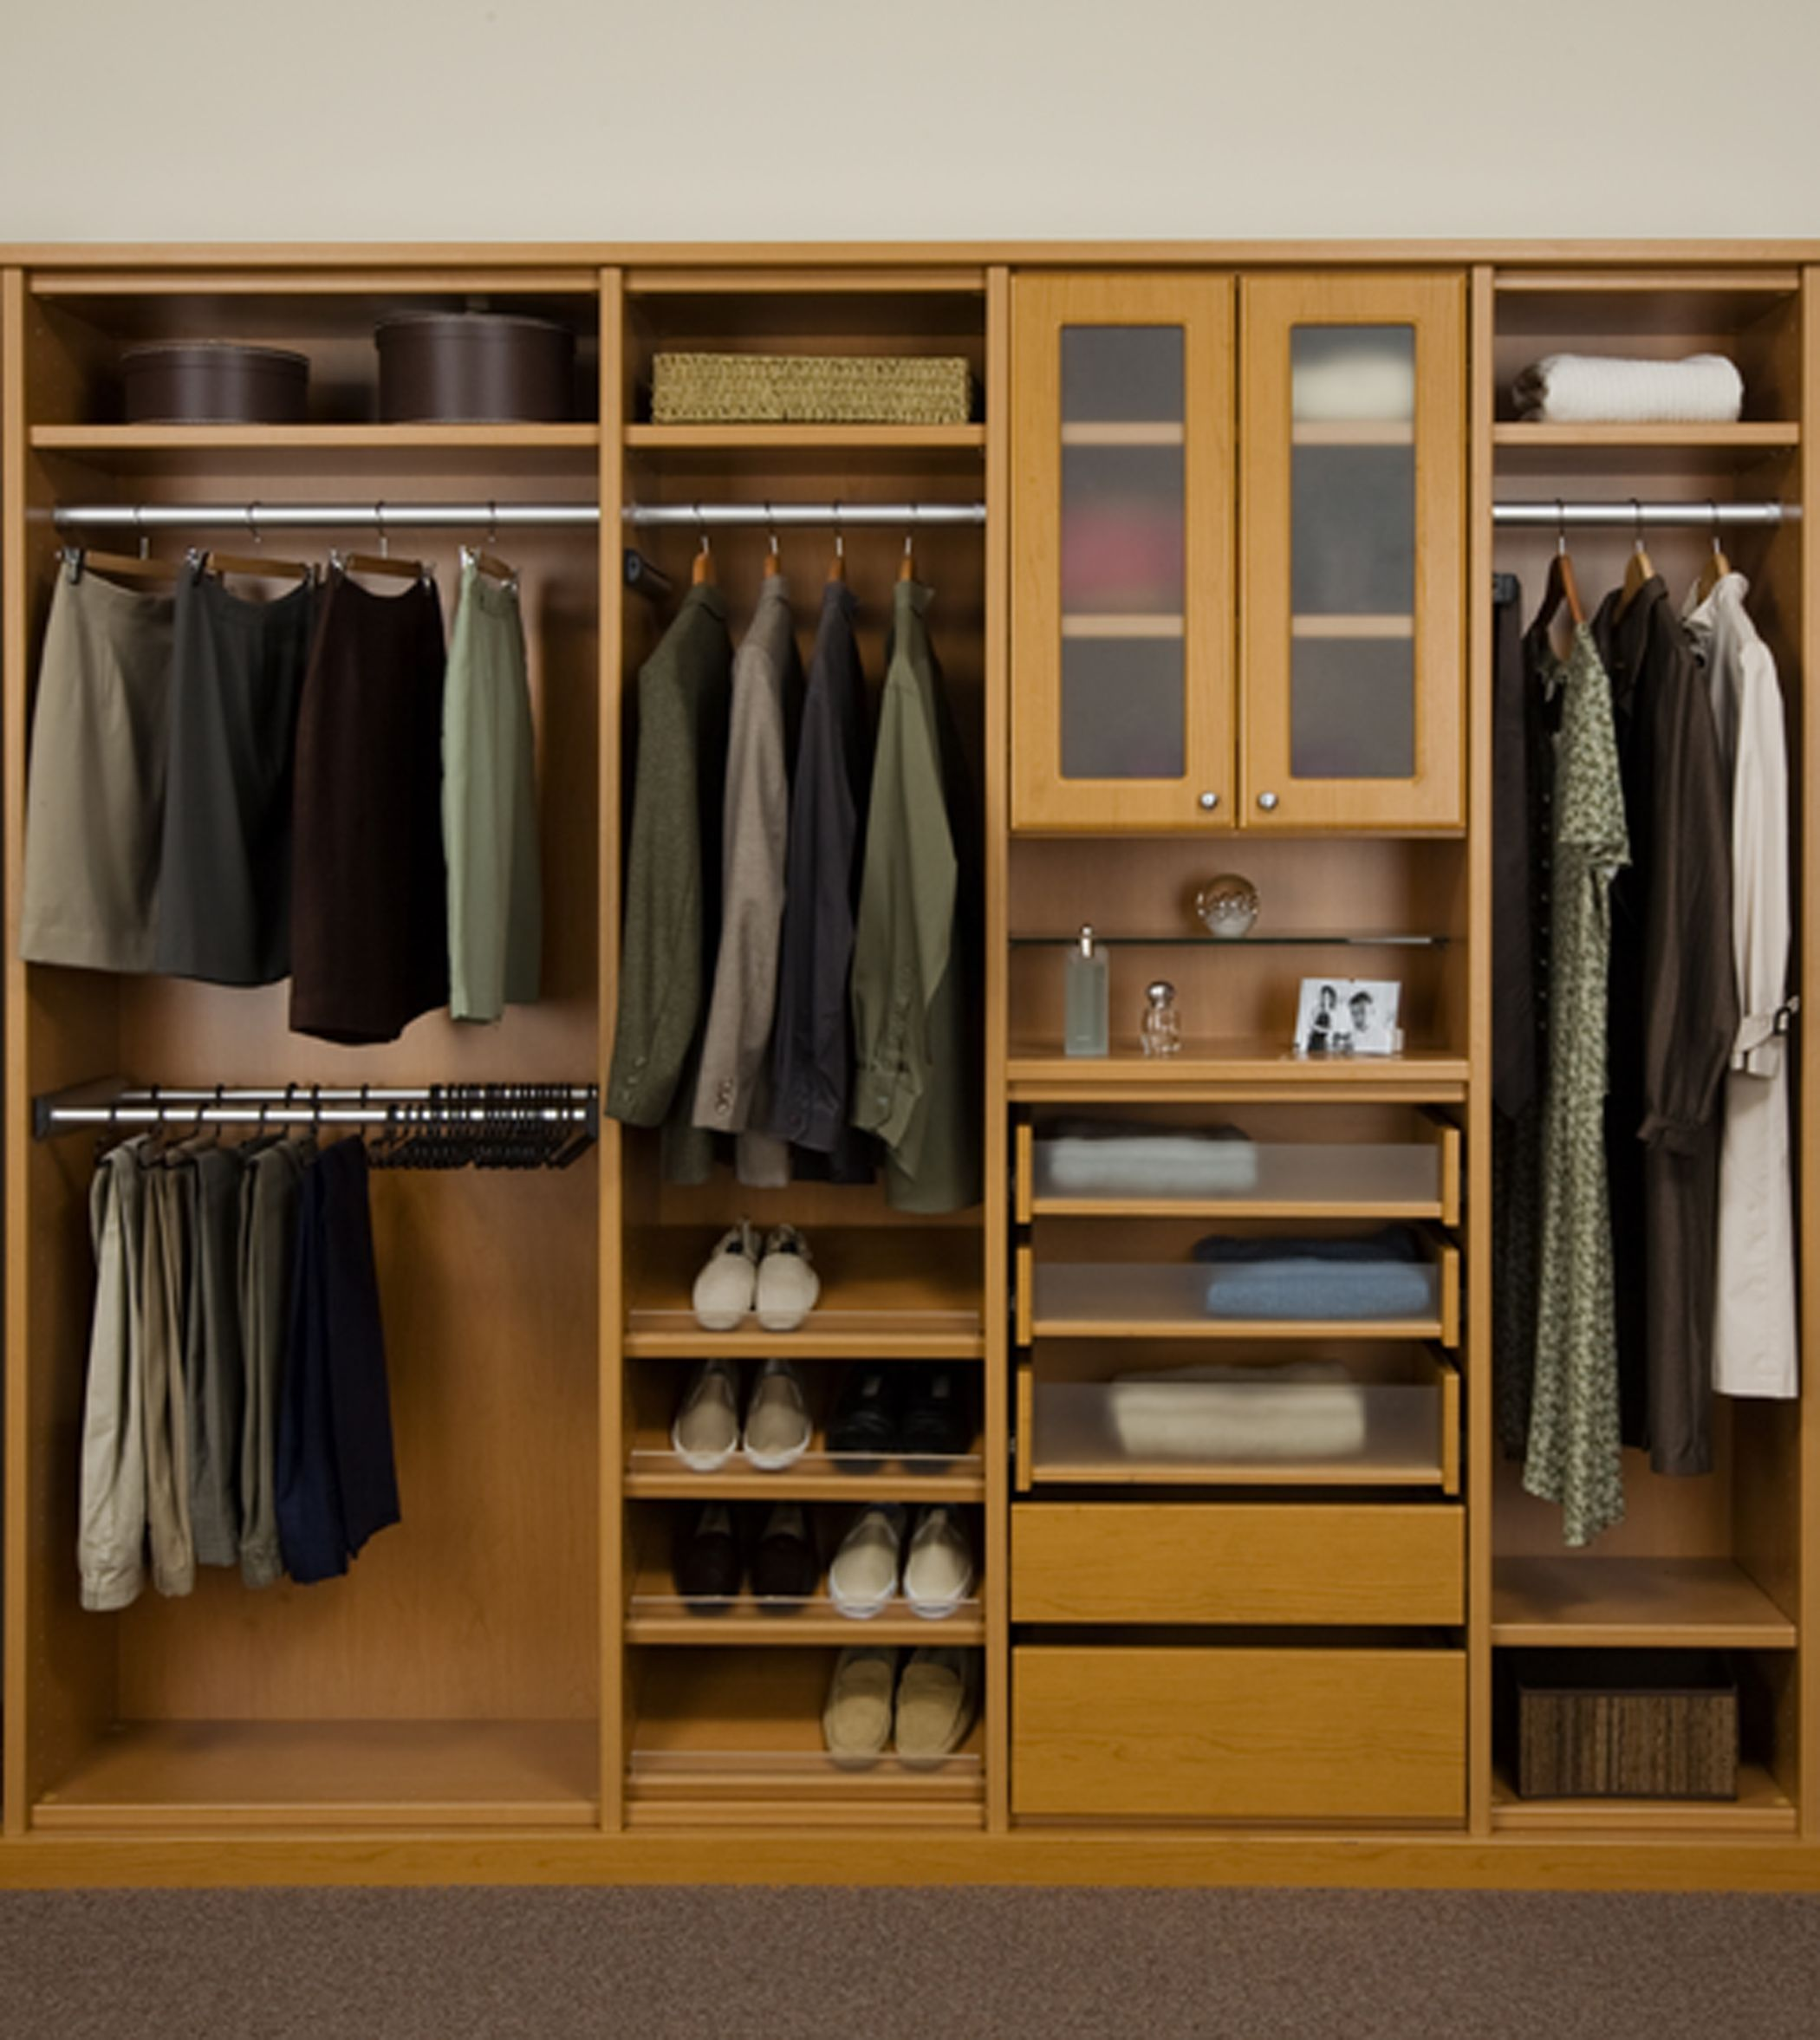 panies closets design ideas picture 22 Amazing Closet Design